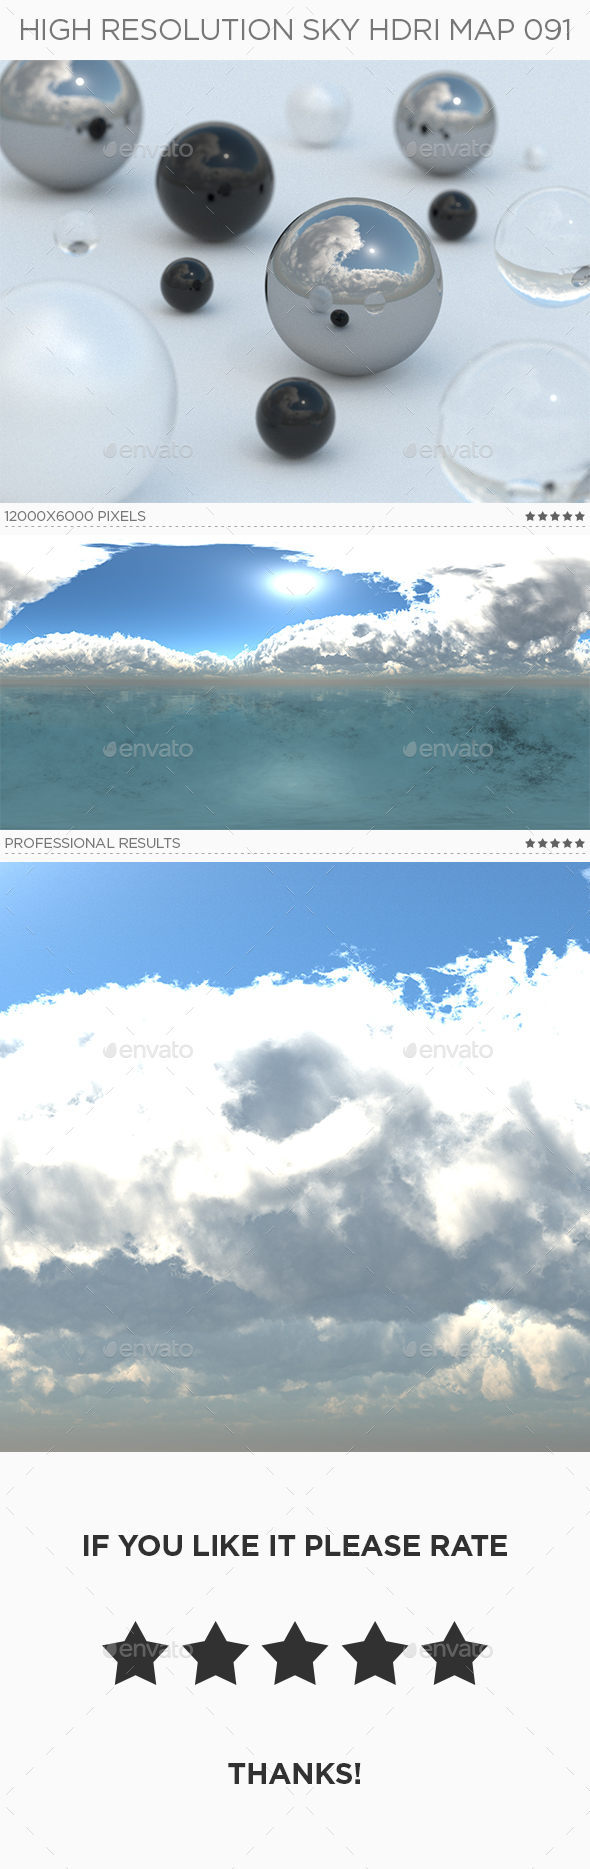 High Resolution Sky HDRi Map 091 - 3DOcean Item for Sale